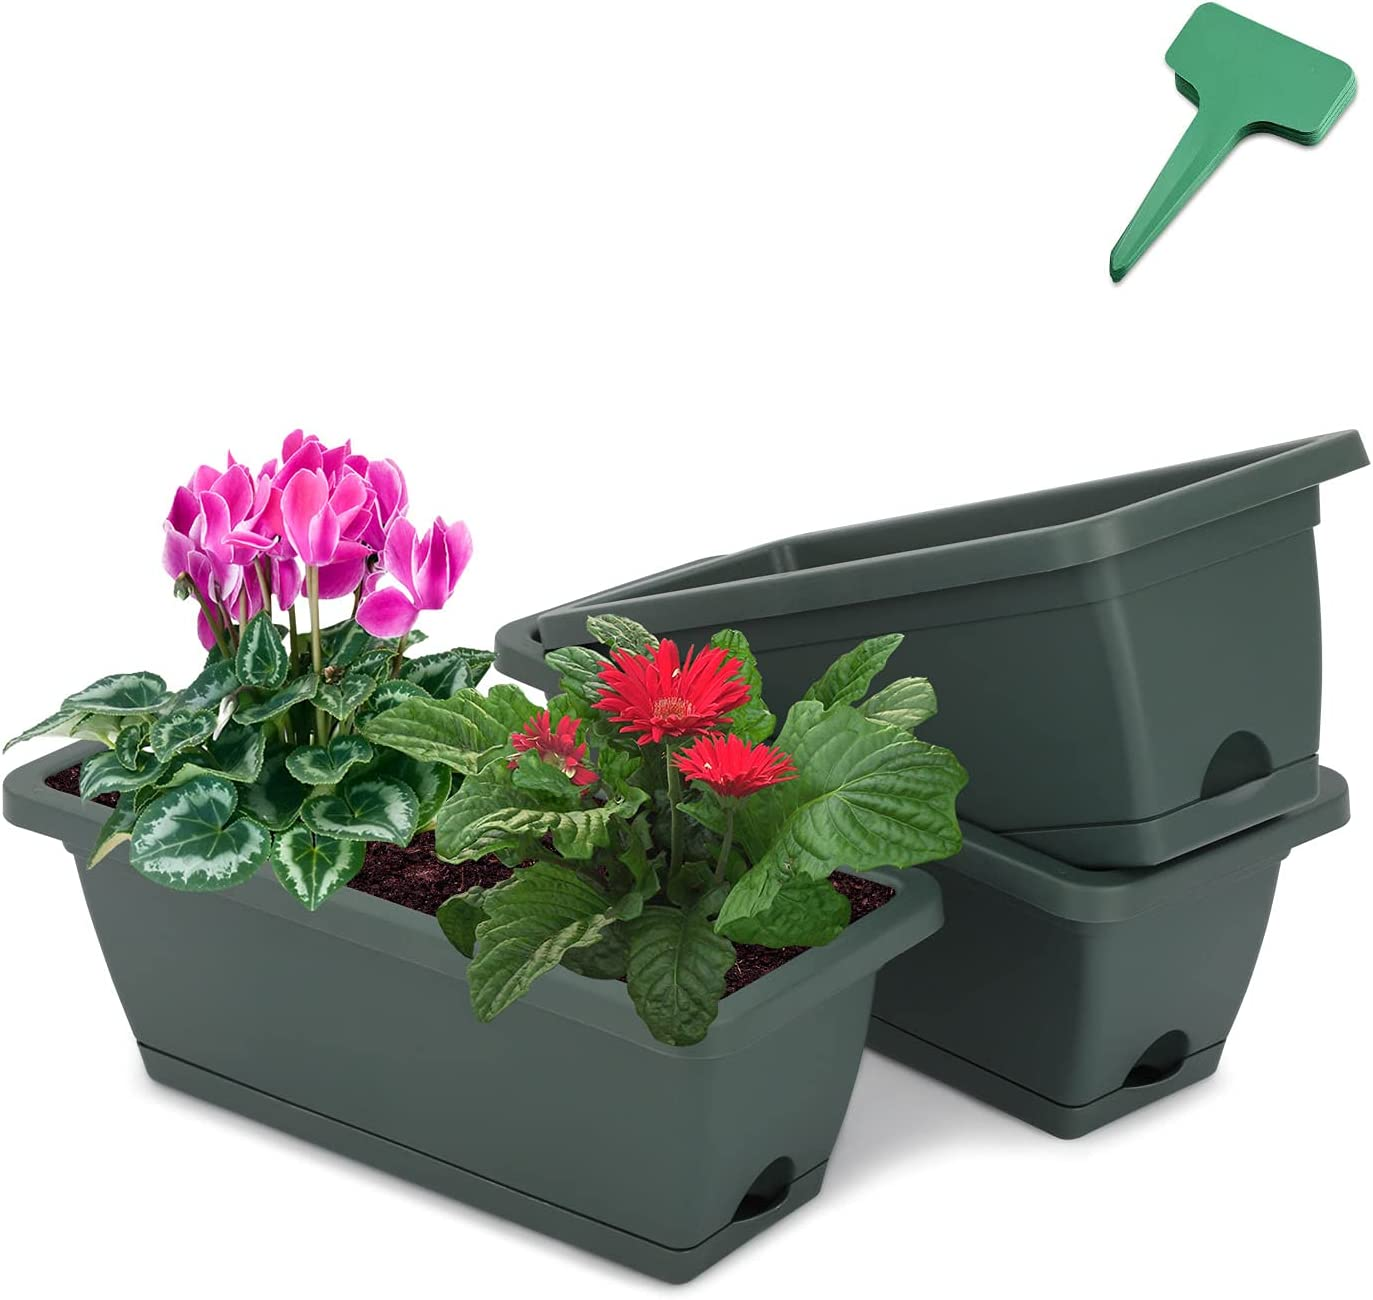 CEED4U 17 Inches 3 Packs Green Window Box Rectangular Flower Vegetable Planter Boxes Plastic Flower Pot with 15 Pcs Plant Labels, Plant Container with Saucer for Windowsill, Patio, Garden, Home Décor